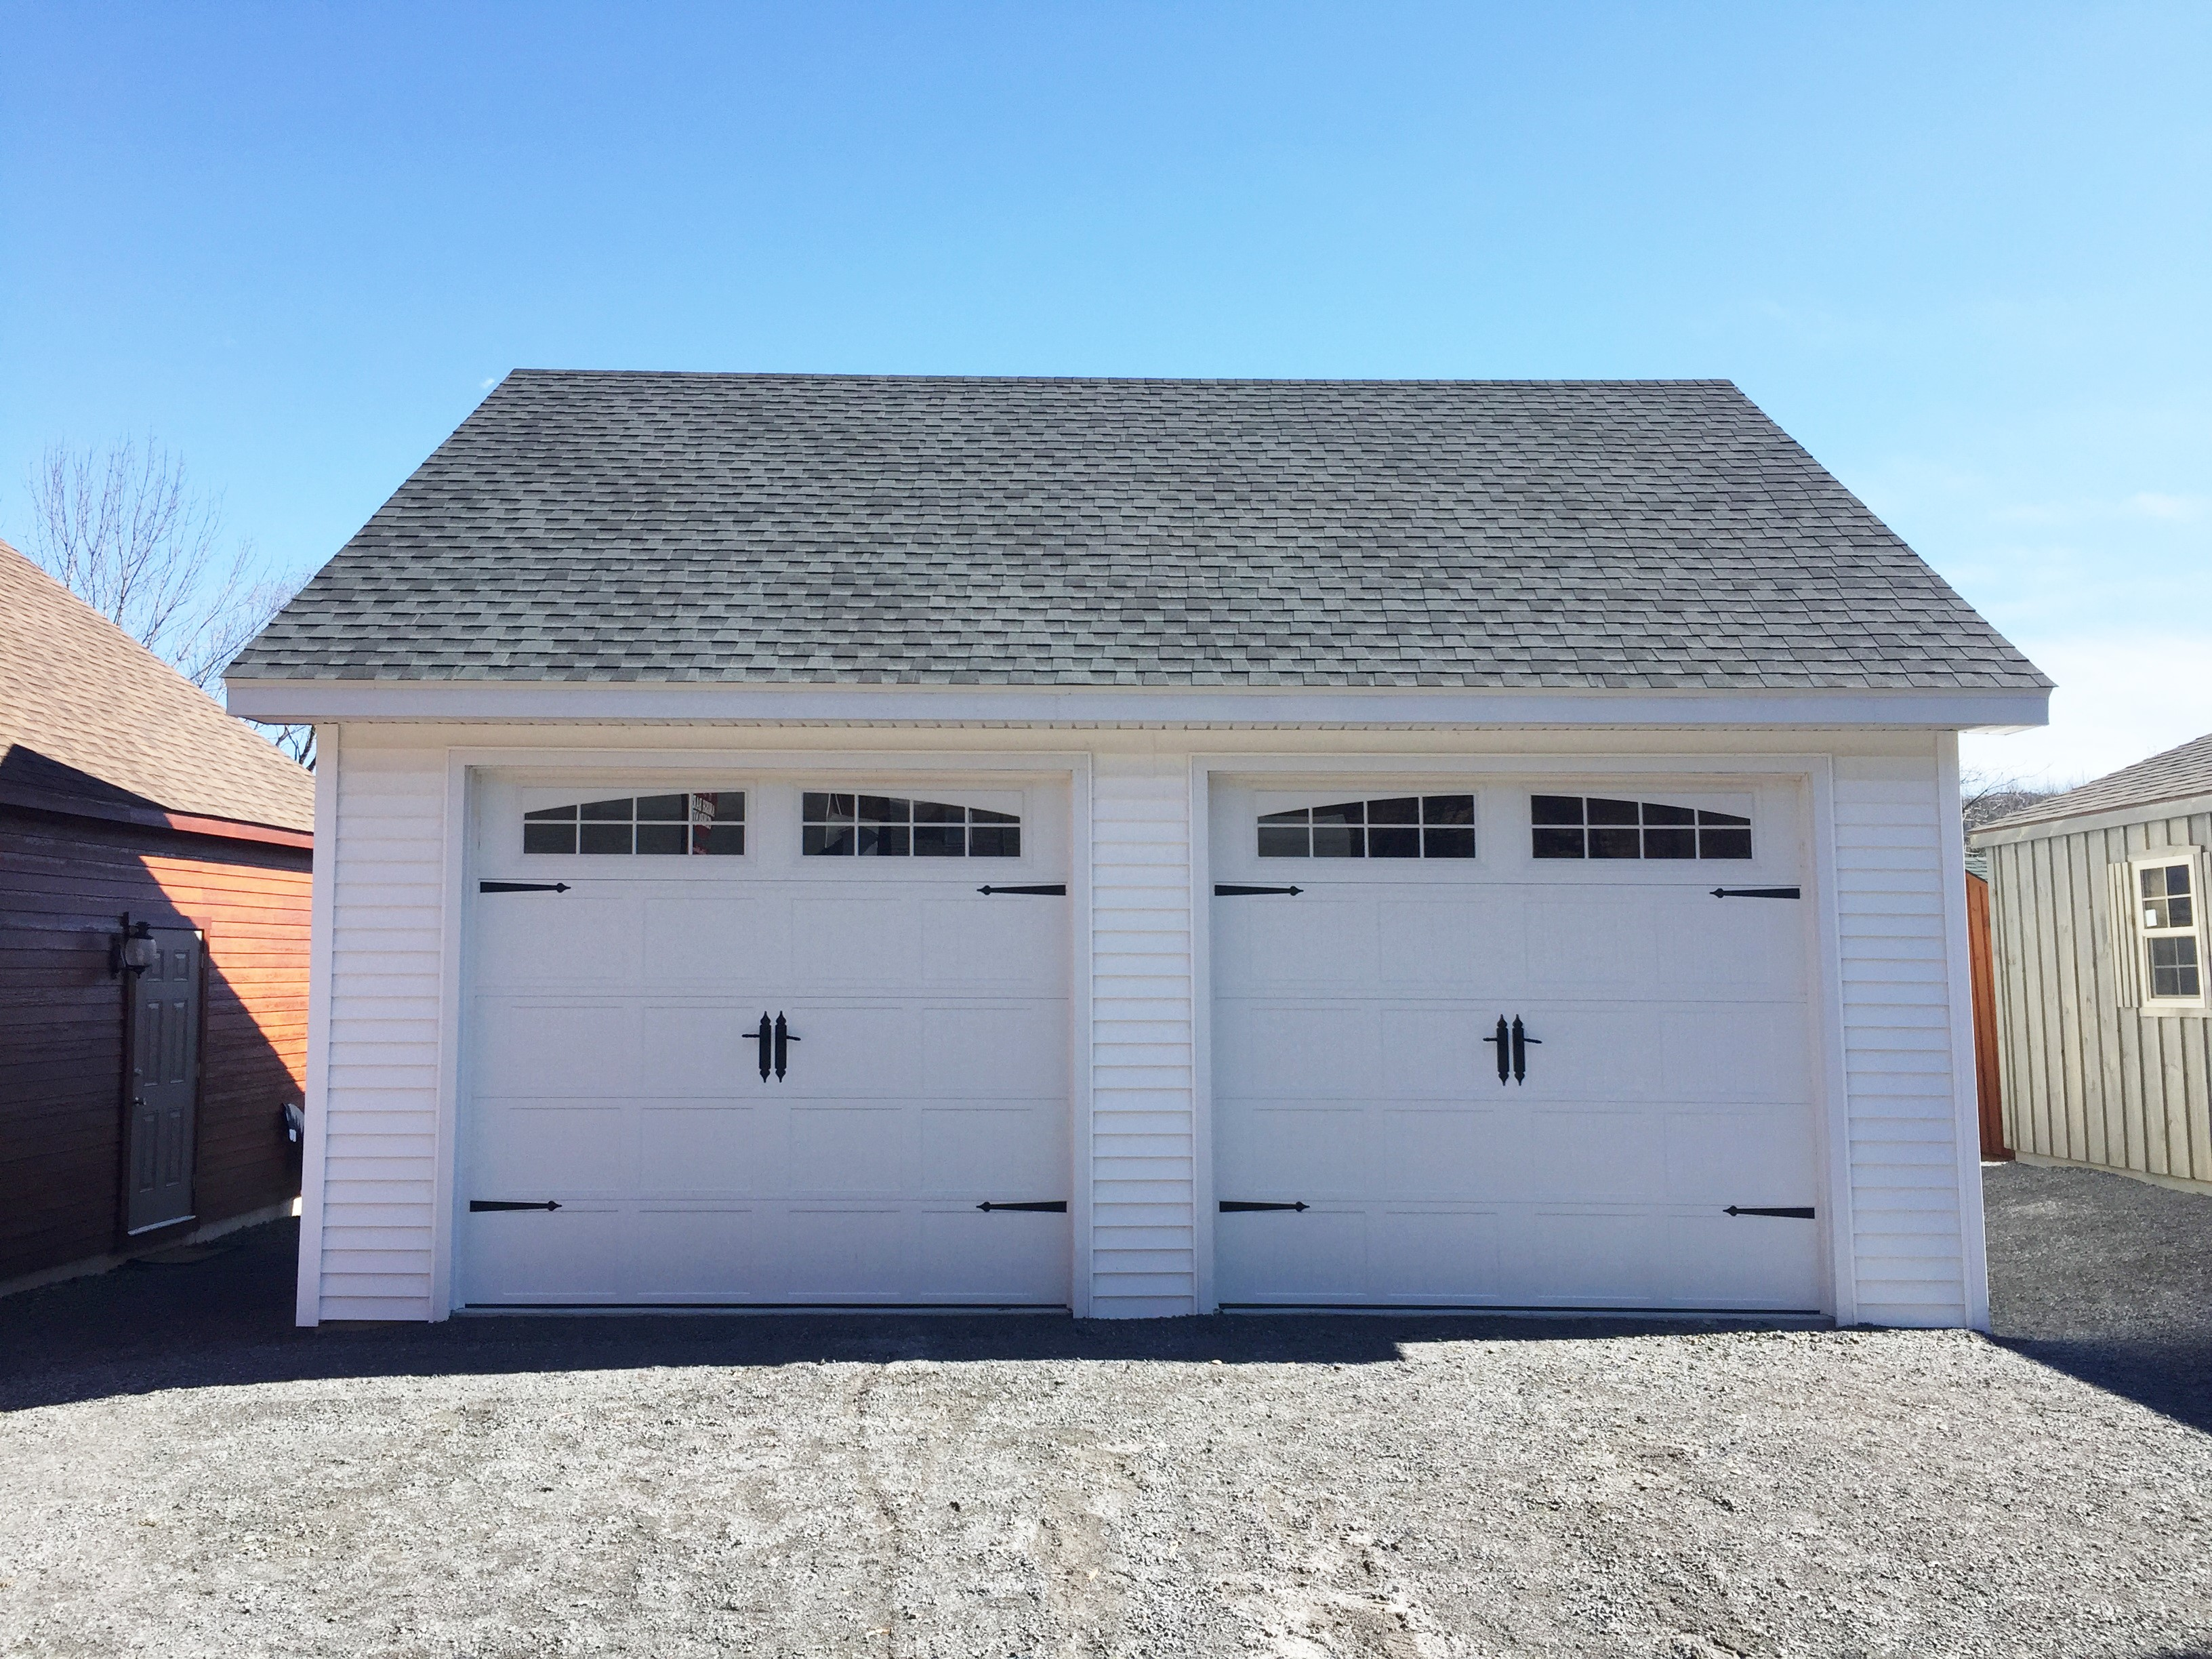 Built on site custom amish garages in oneonta ny amish for Cost to build a garage st louis